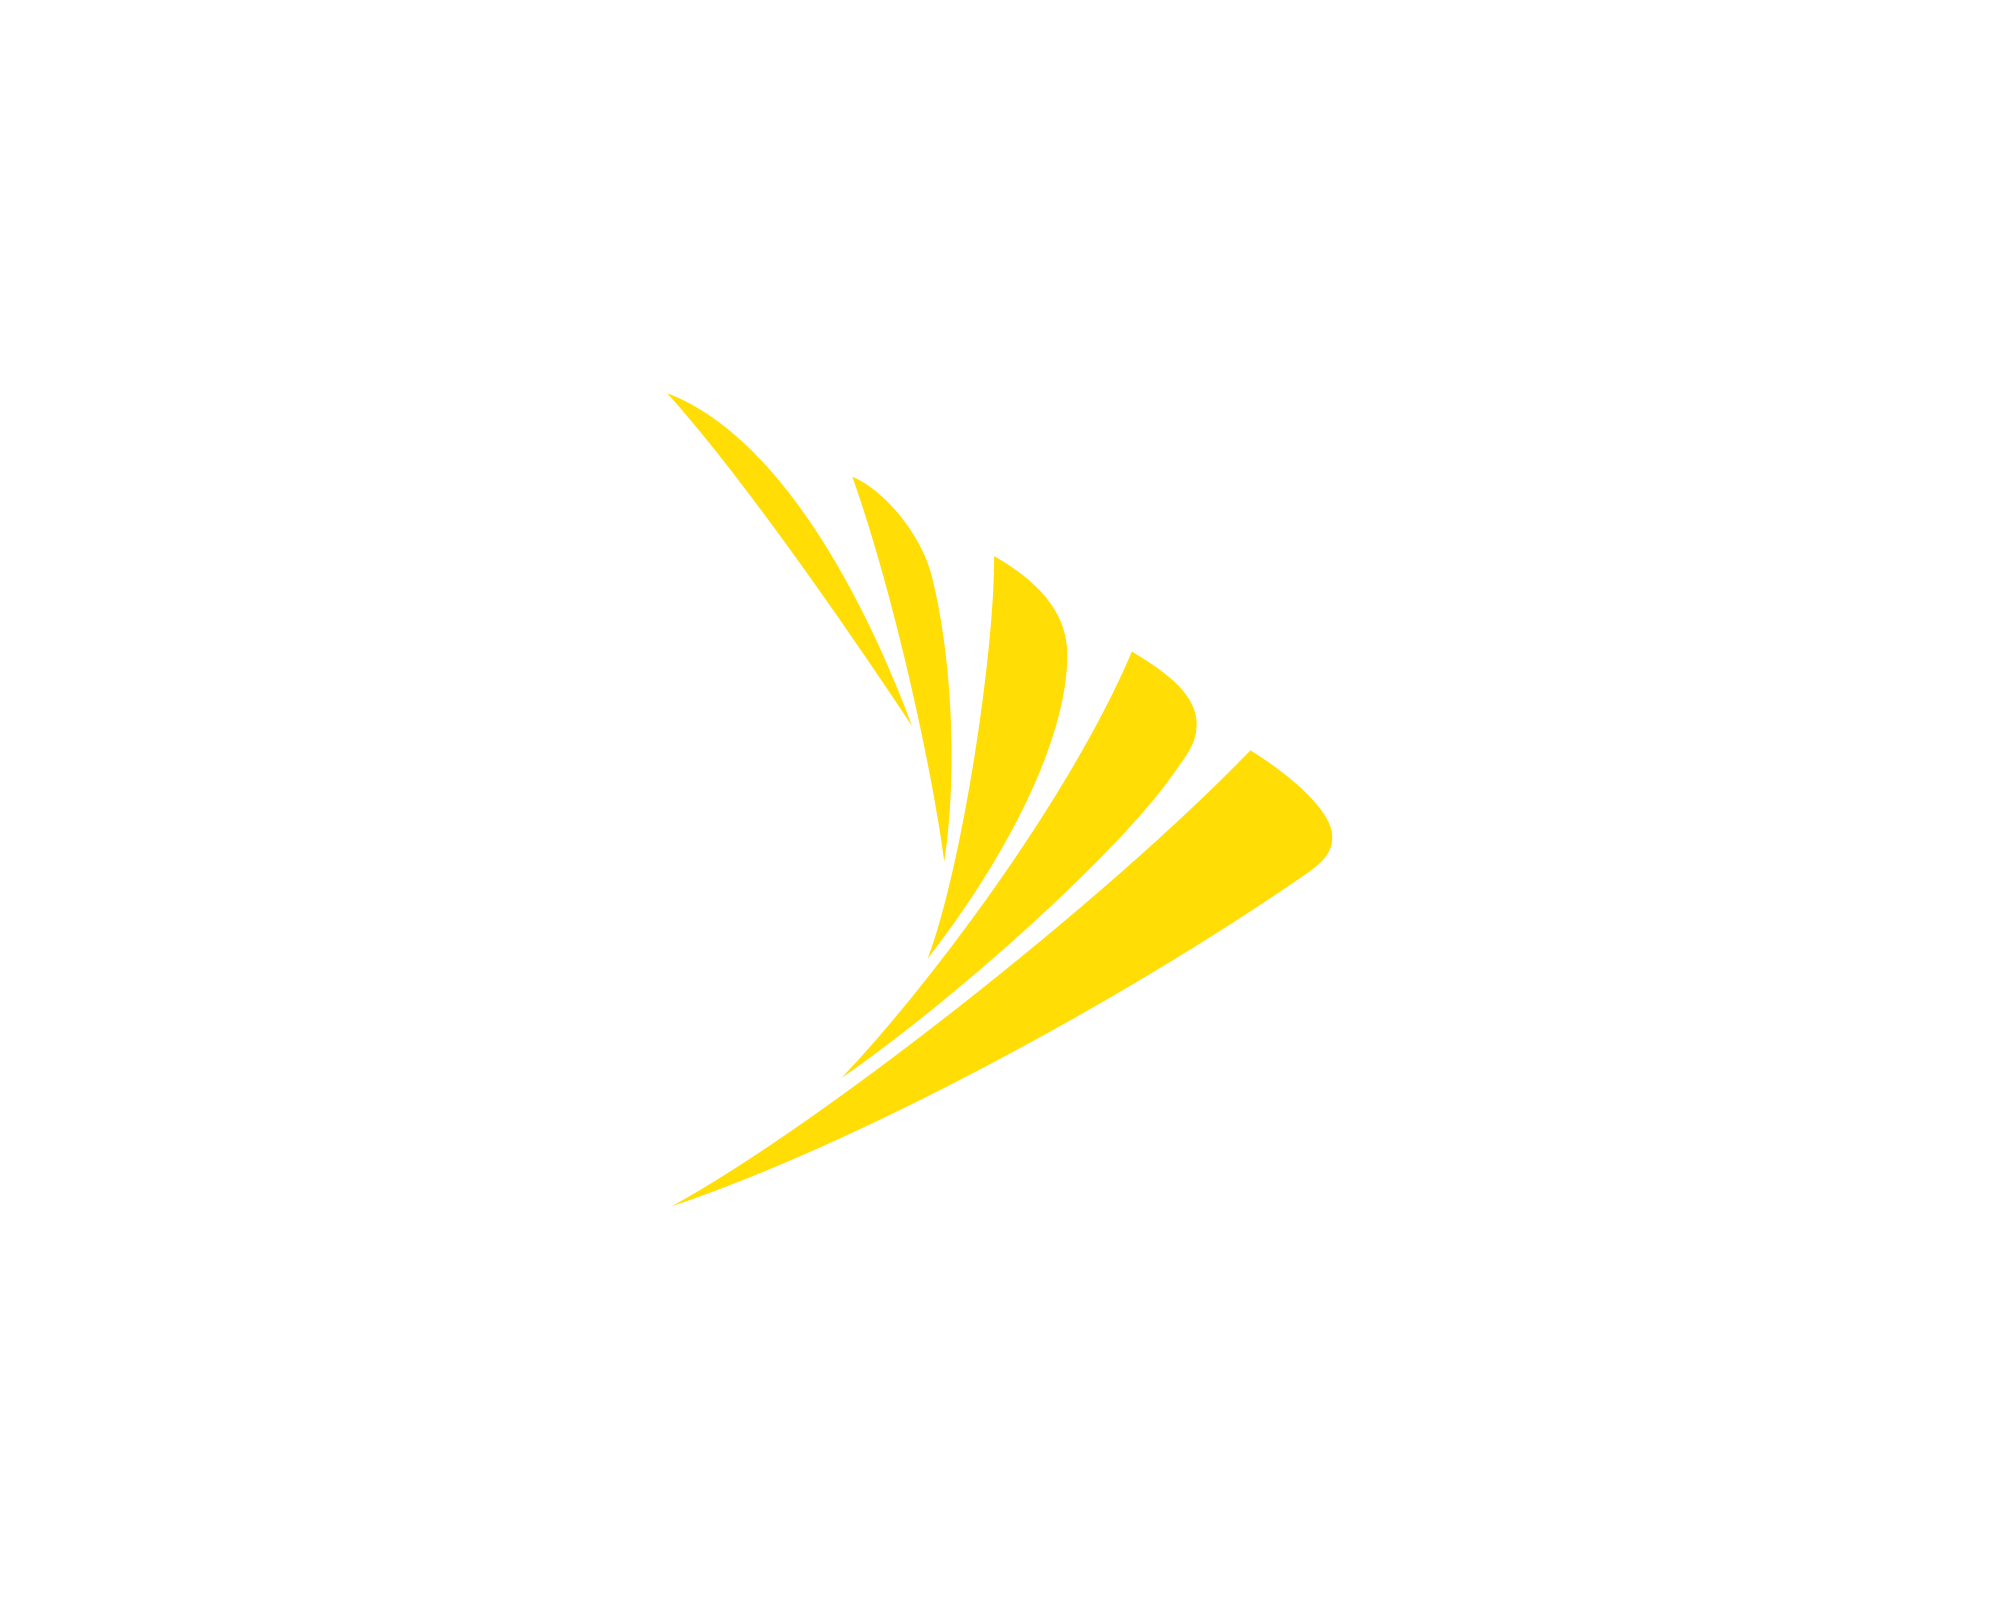 the gallery for gt sprint logo png